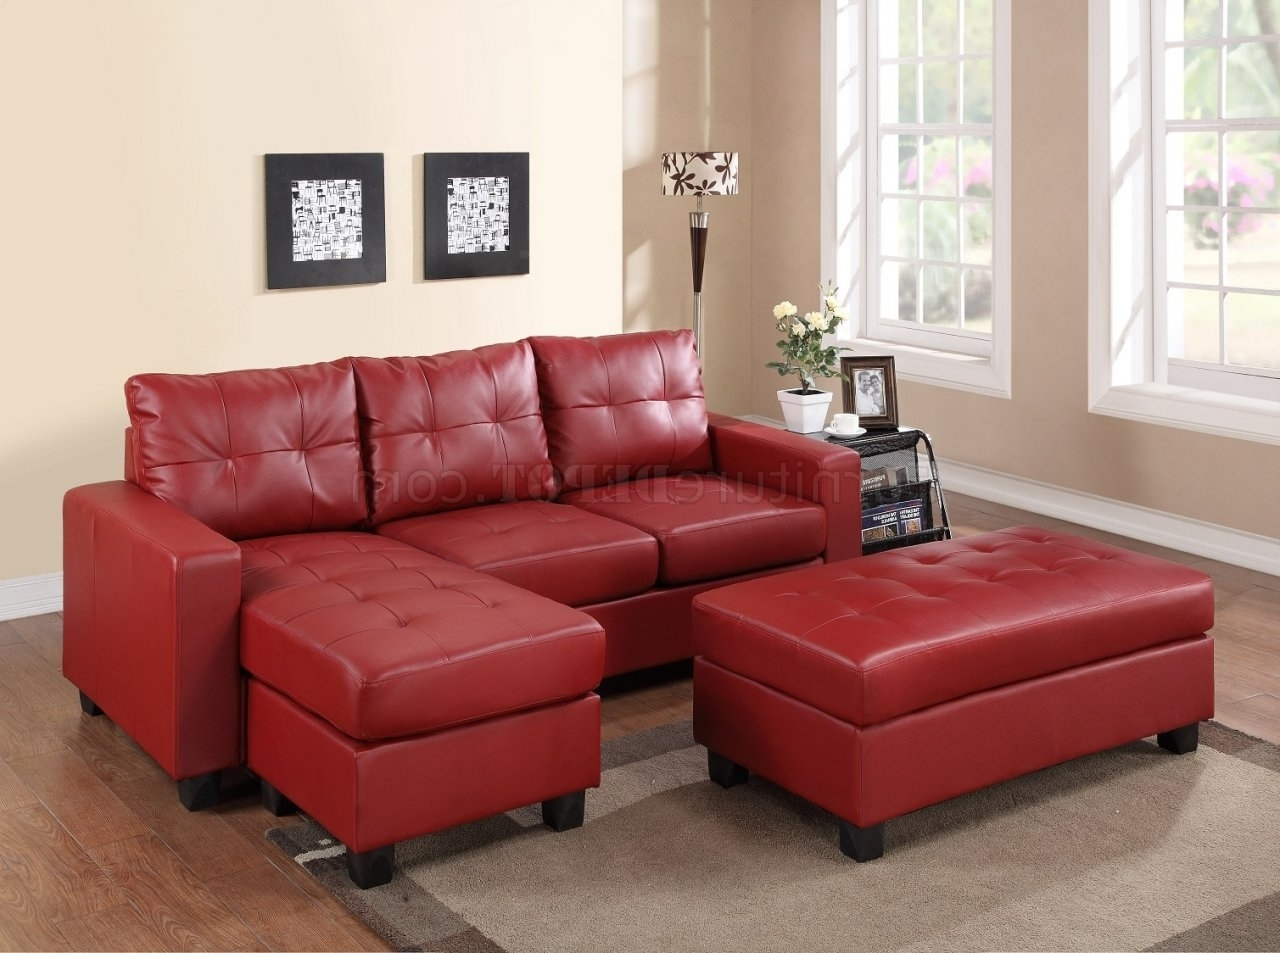 2511 Sectional Sofa Set In Red Bonded Leather Match Pu Inside Most Recently Released Red Sectional Sofas With Ottoman (View 4 of 15)